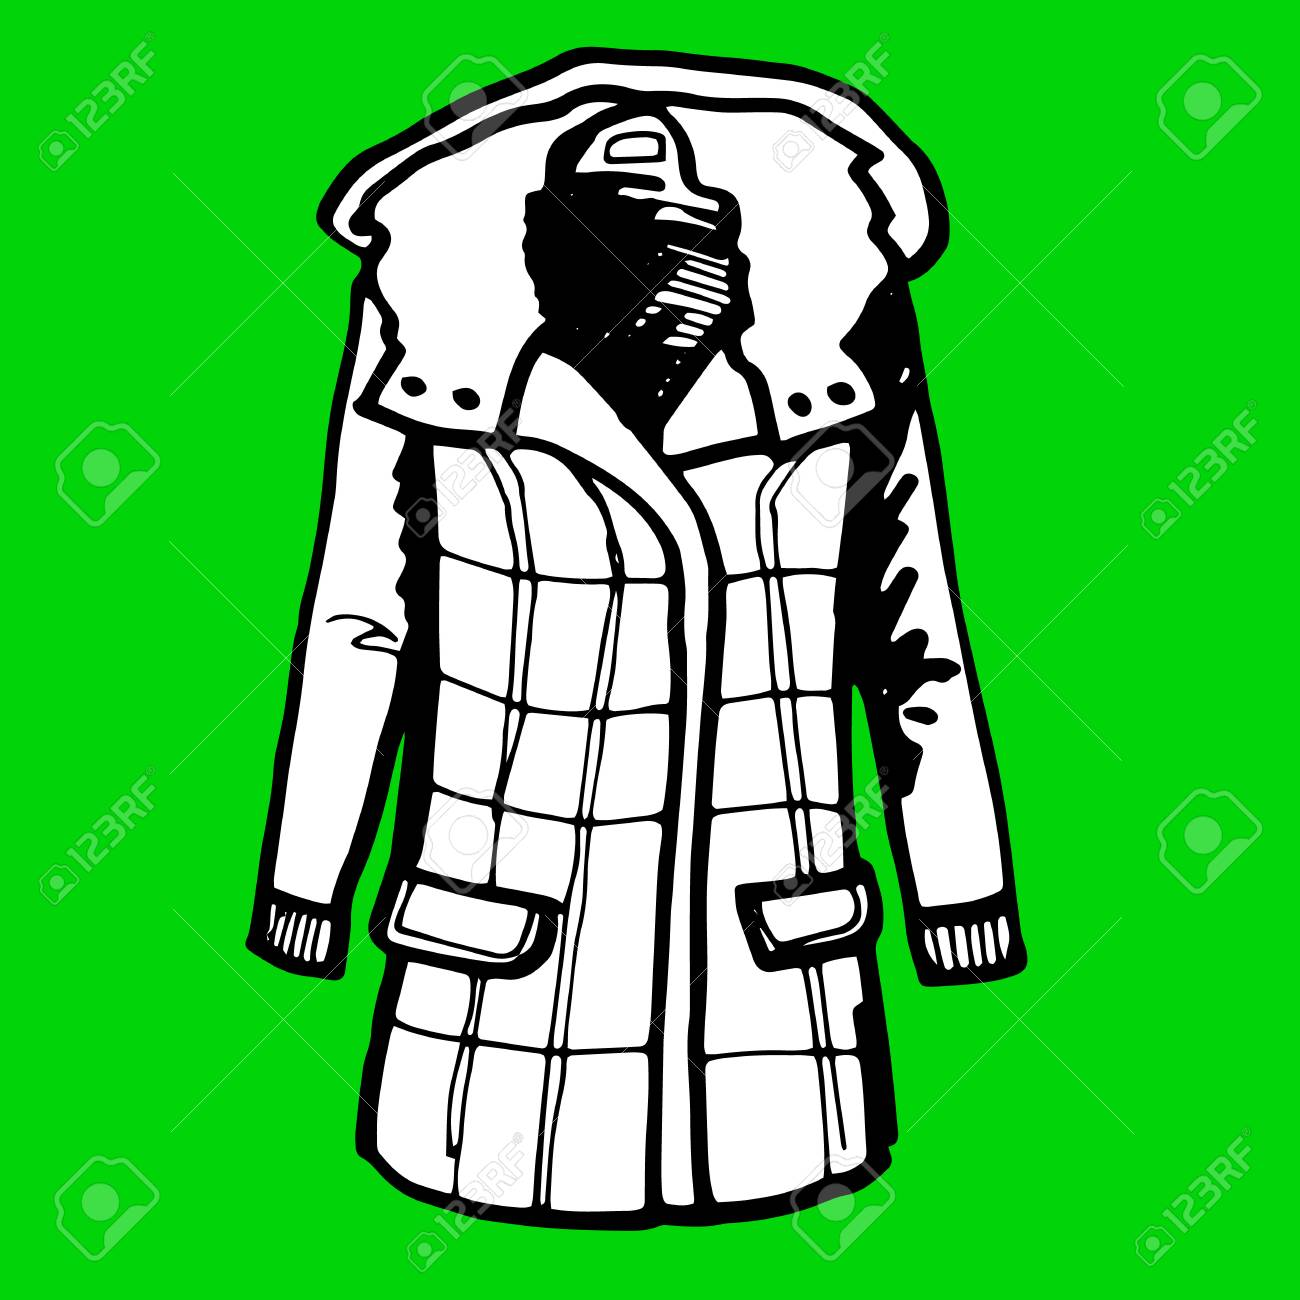 Jacket, Vector, Fashion, Clothing, Winter, Design, Sport, Clothes ...